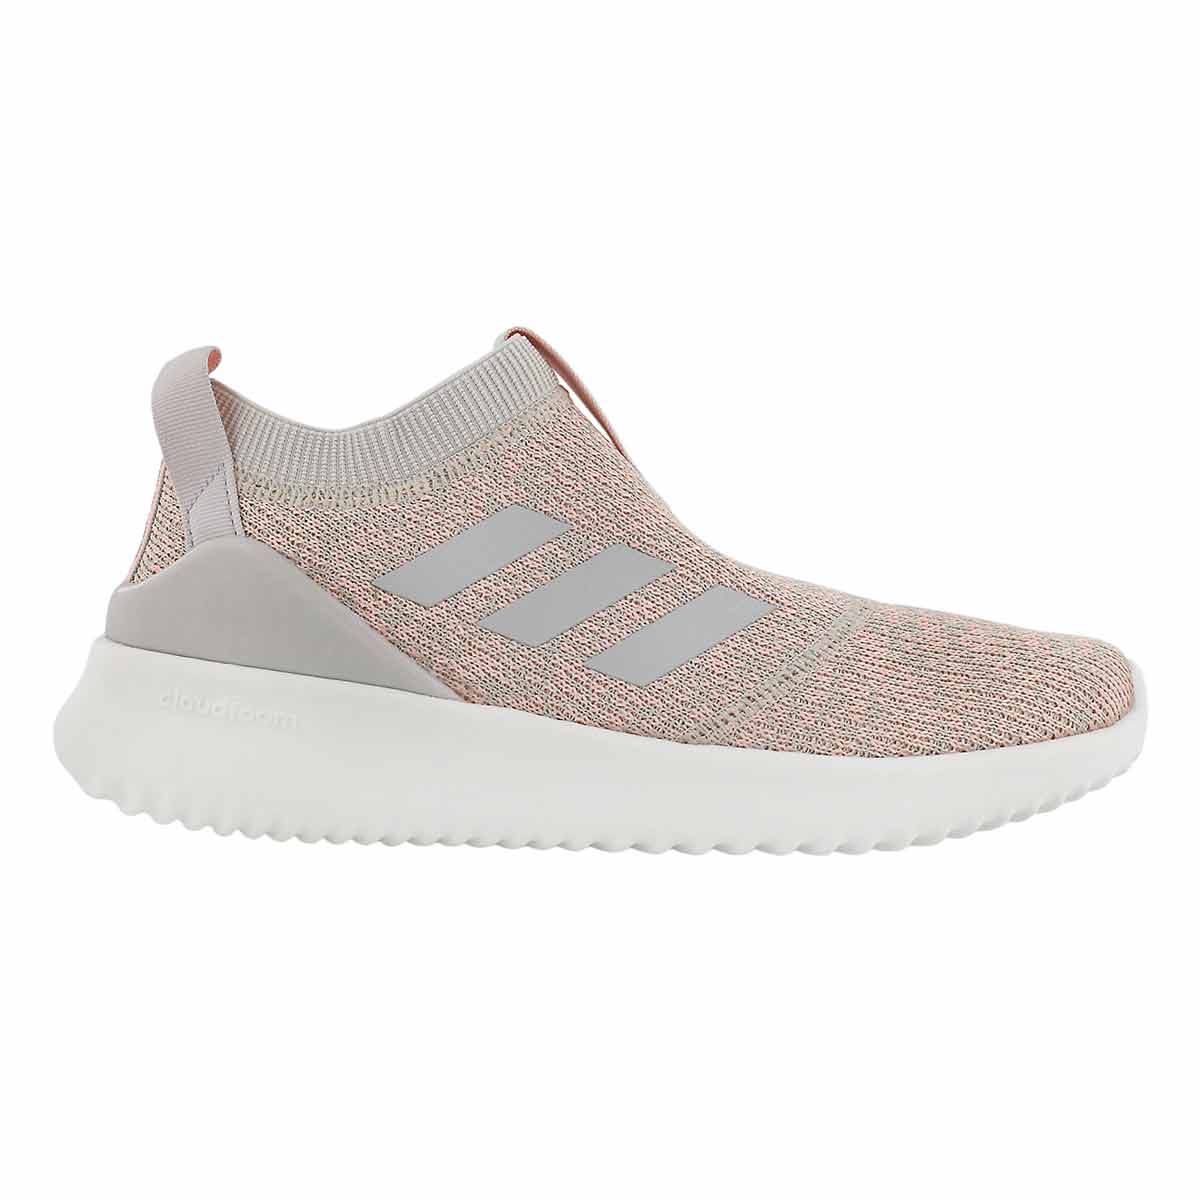 Lds Ultimafusion brn/gry slip on runner